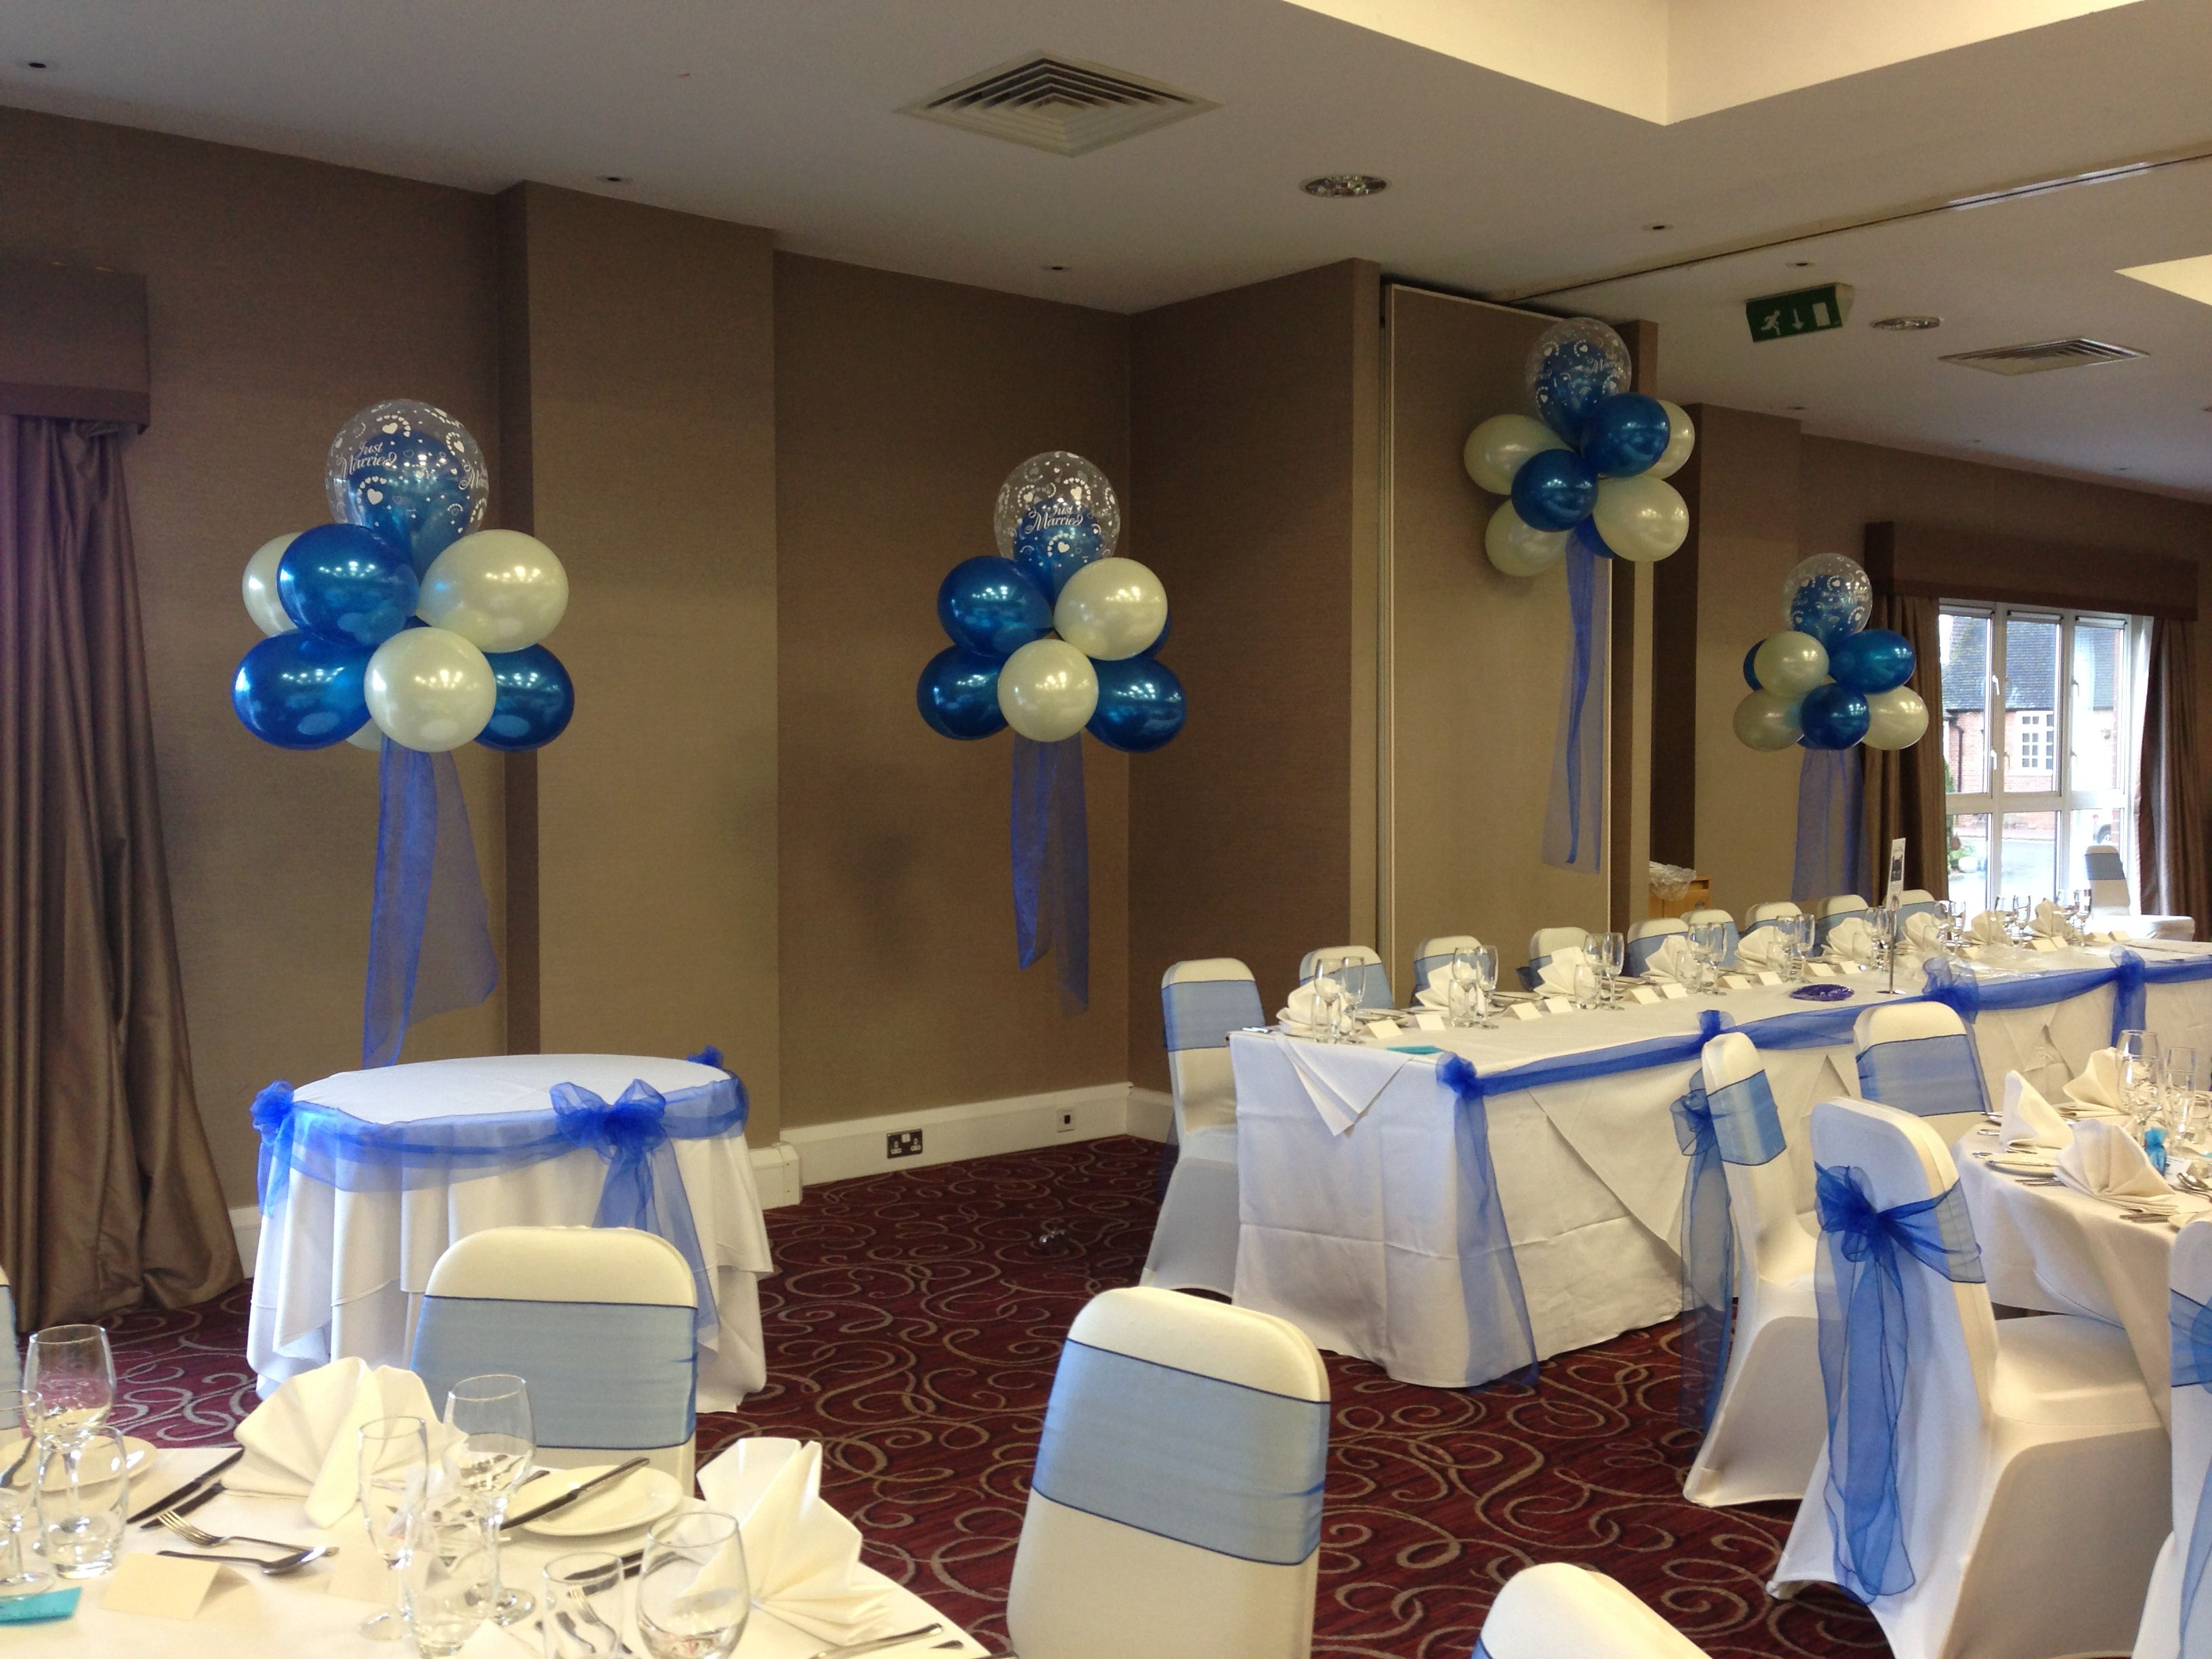 Wedding cloud balloon displays with chair covers in Ivory and